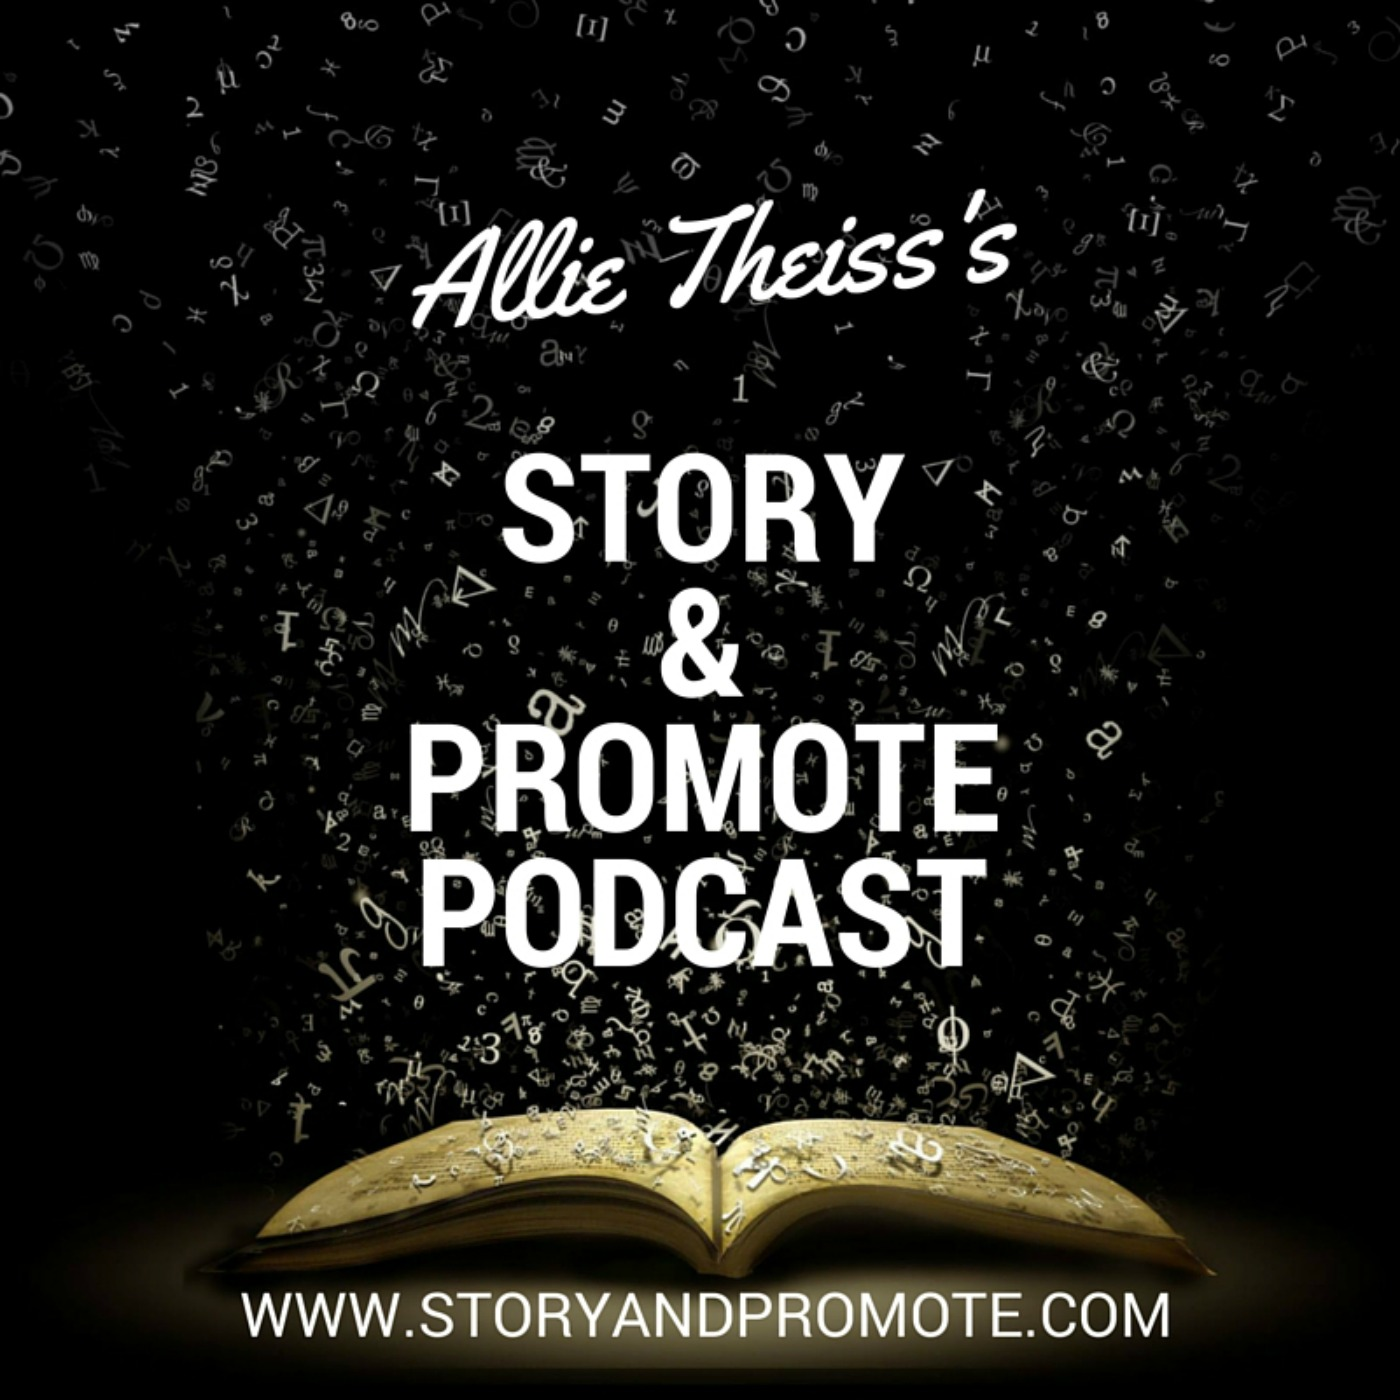 Story and Promote Podcast: Pros & Cons of Self-Publishing